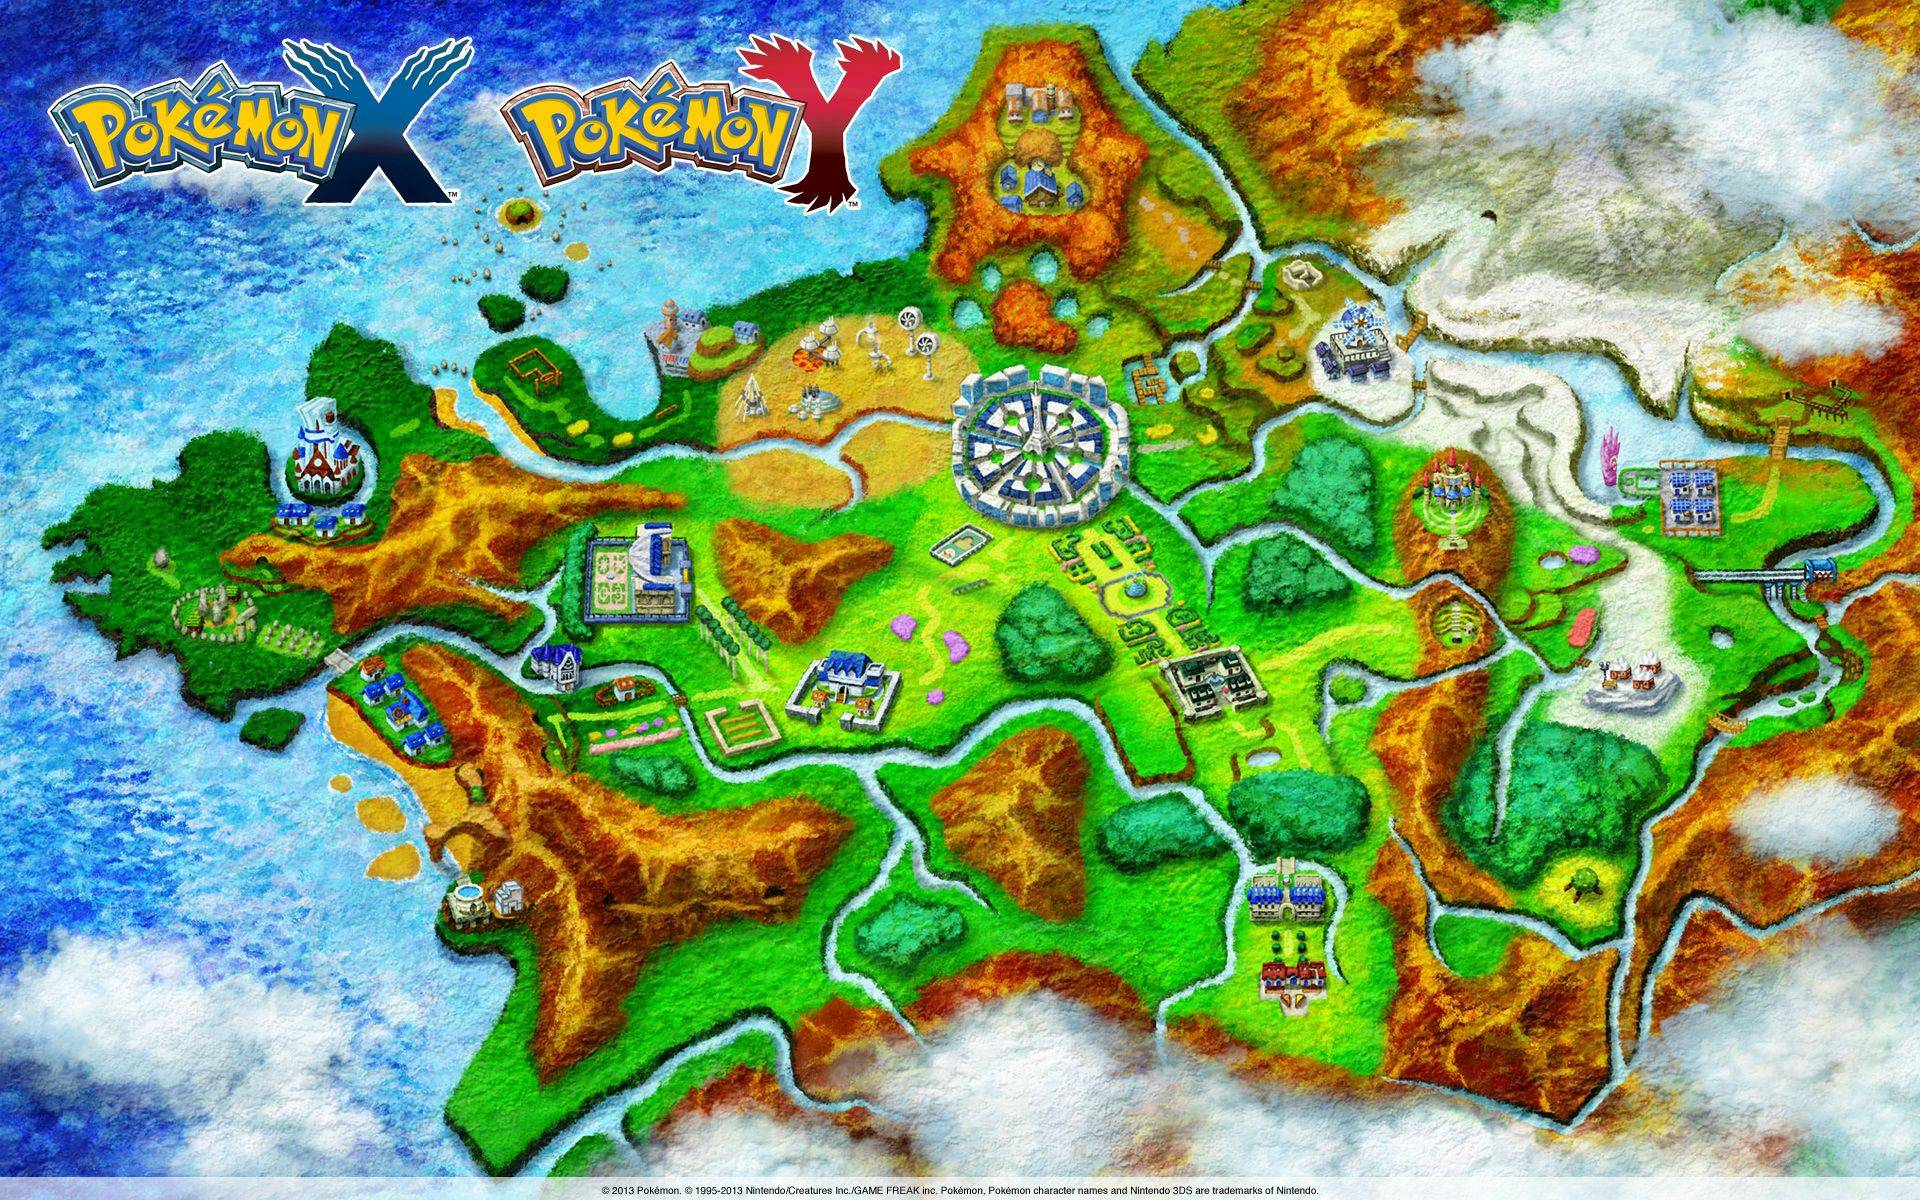 Detailed Kalos map with route/town/interest points overlays